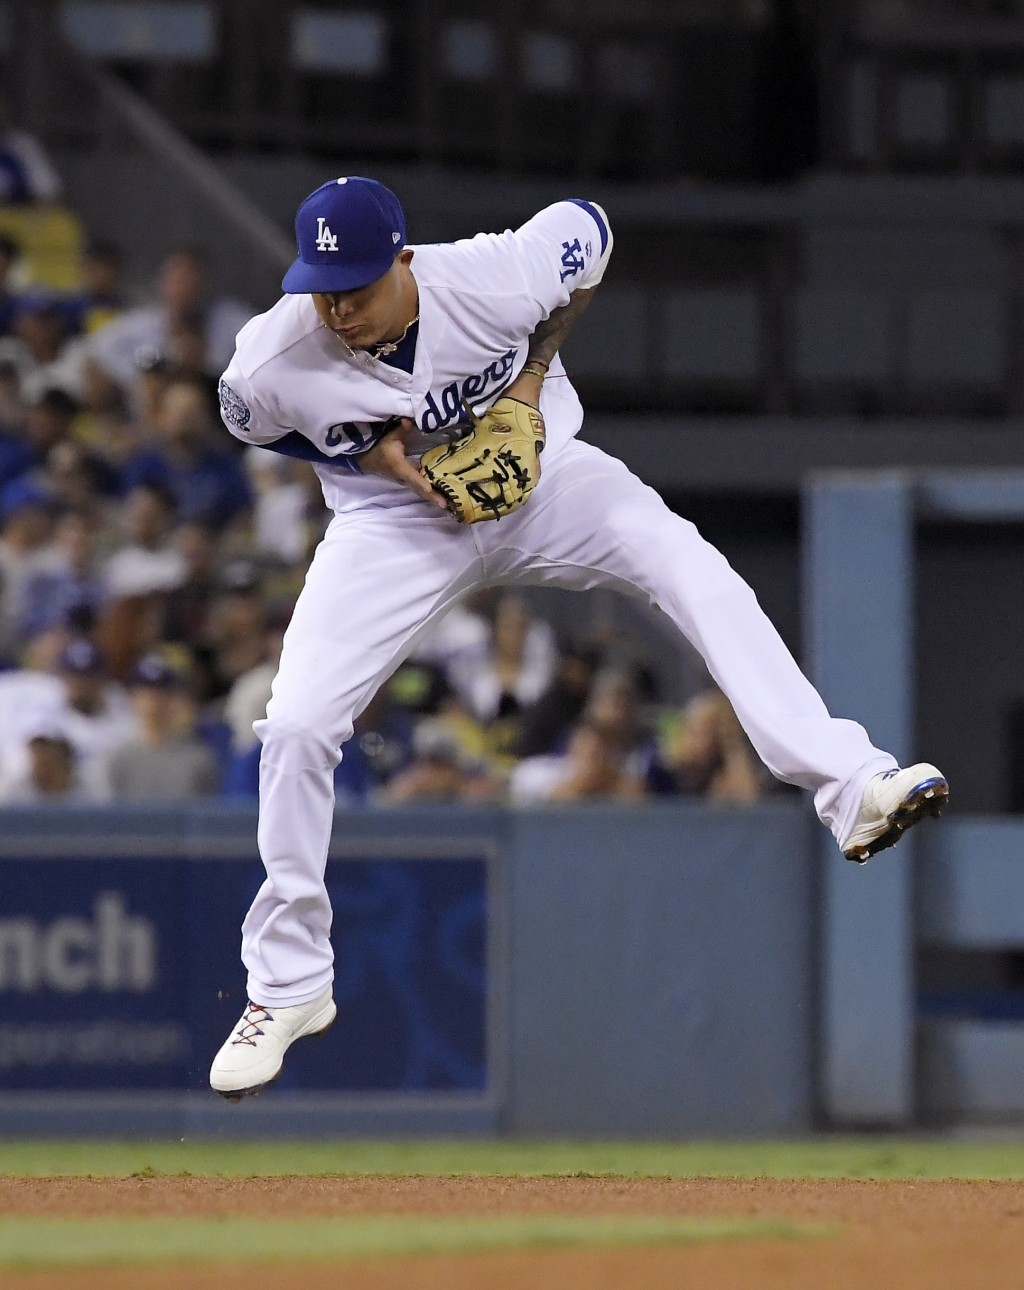 Los Angeles Dodgers shortstop Manny Machado fields a ball hit by San Francisco Giants' Buster Posey during the fourth inning of a baseball game Wednes...